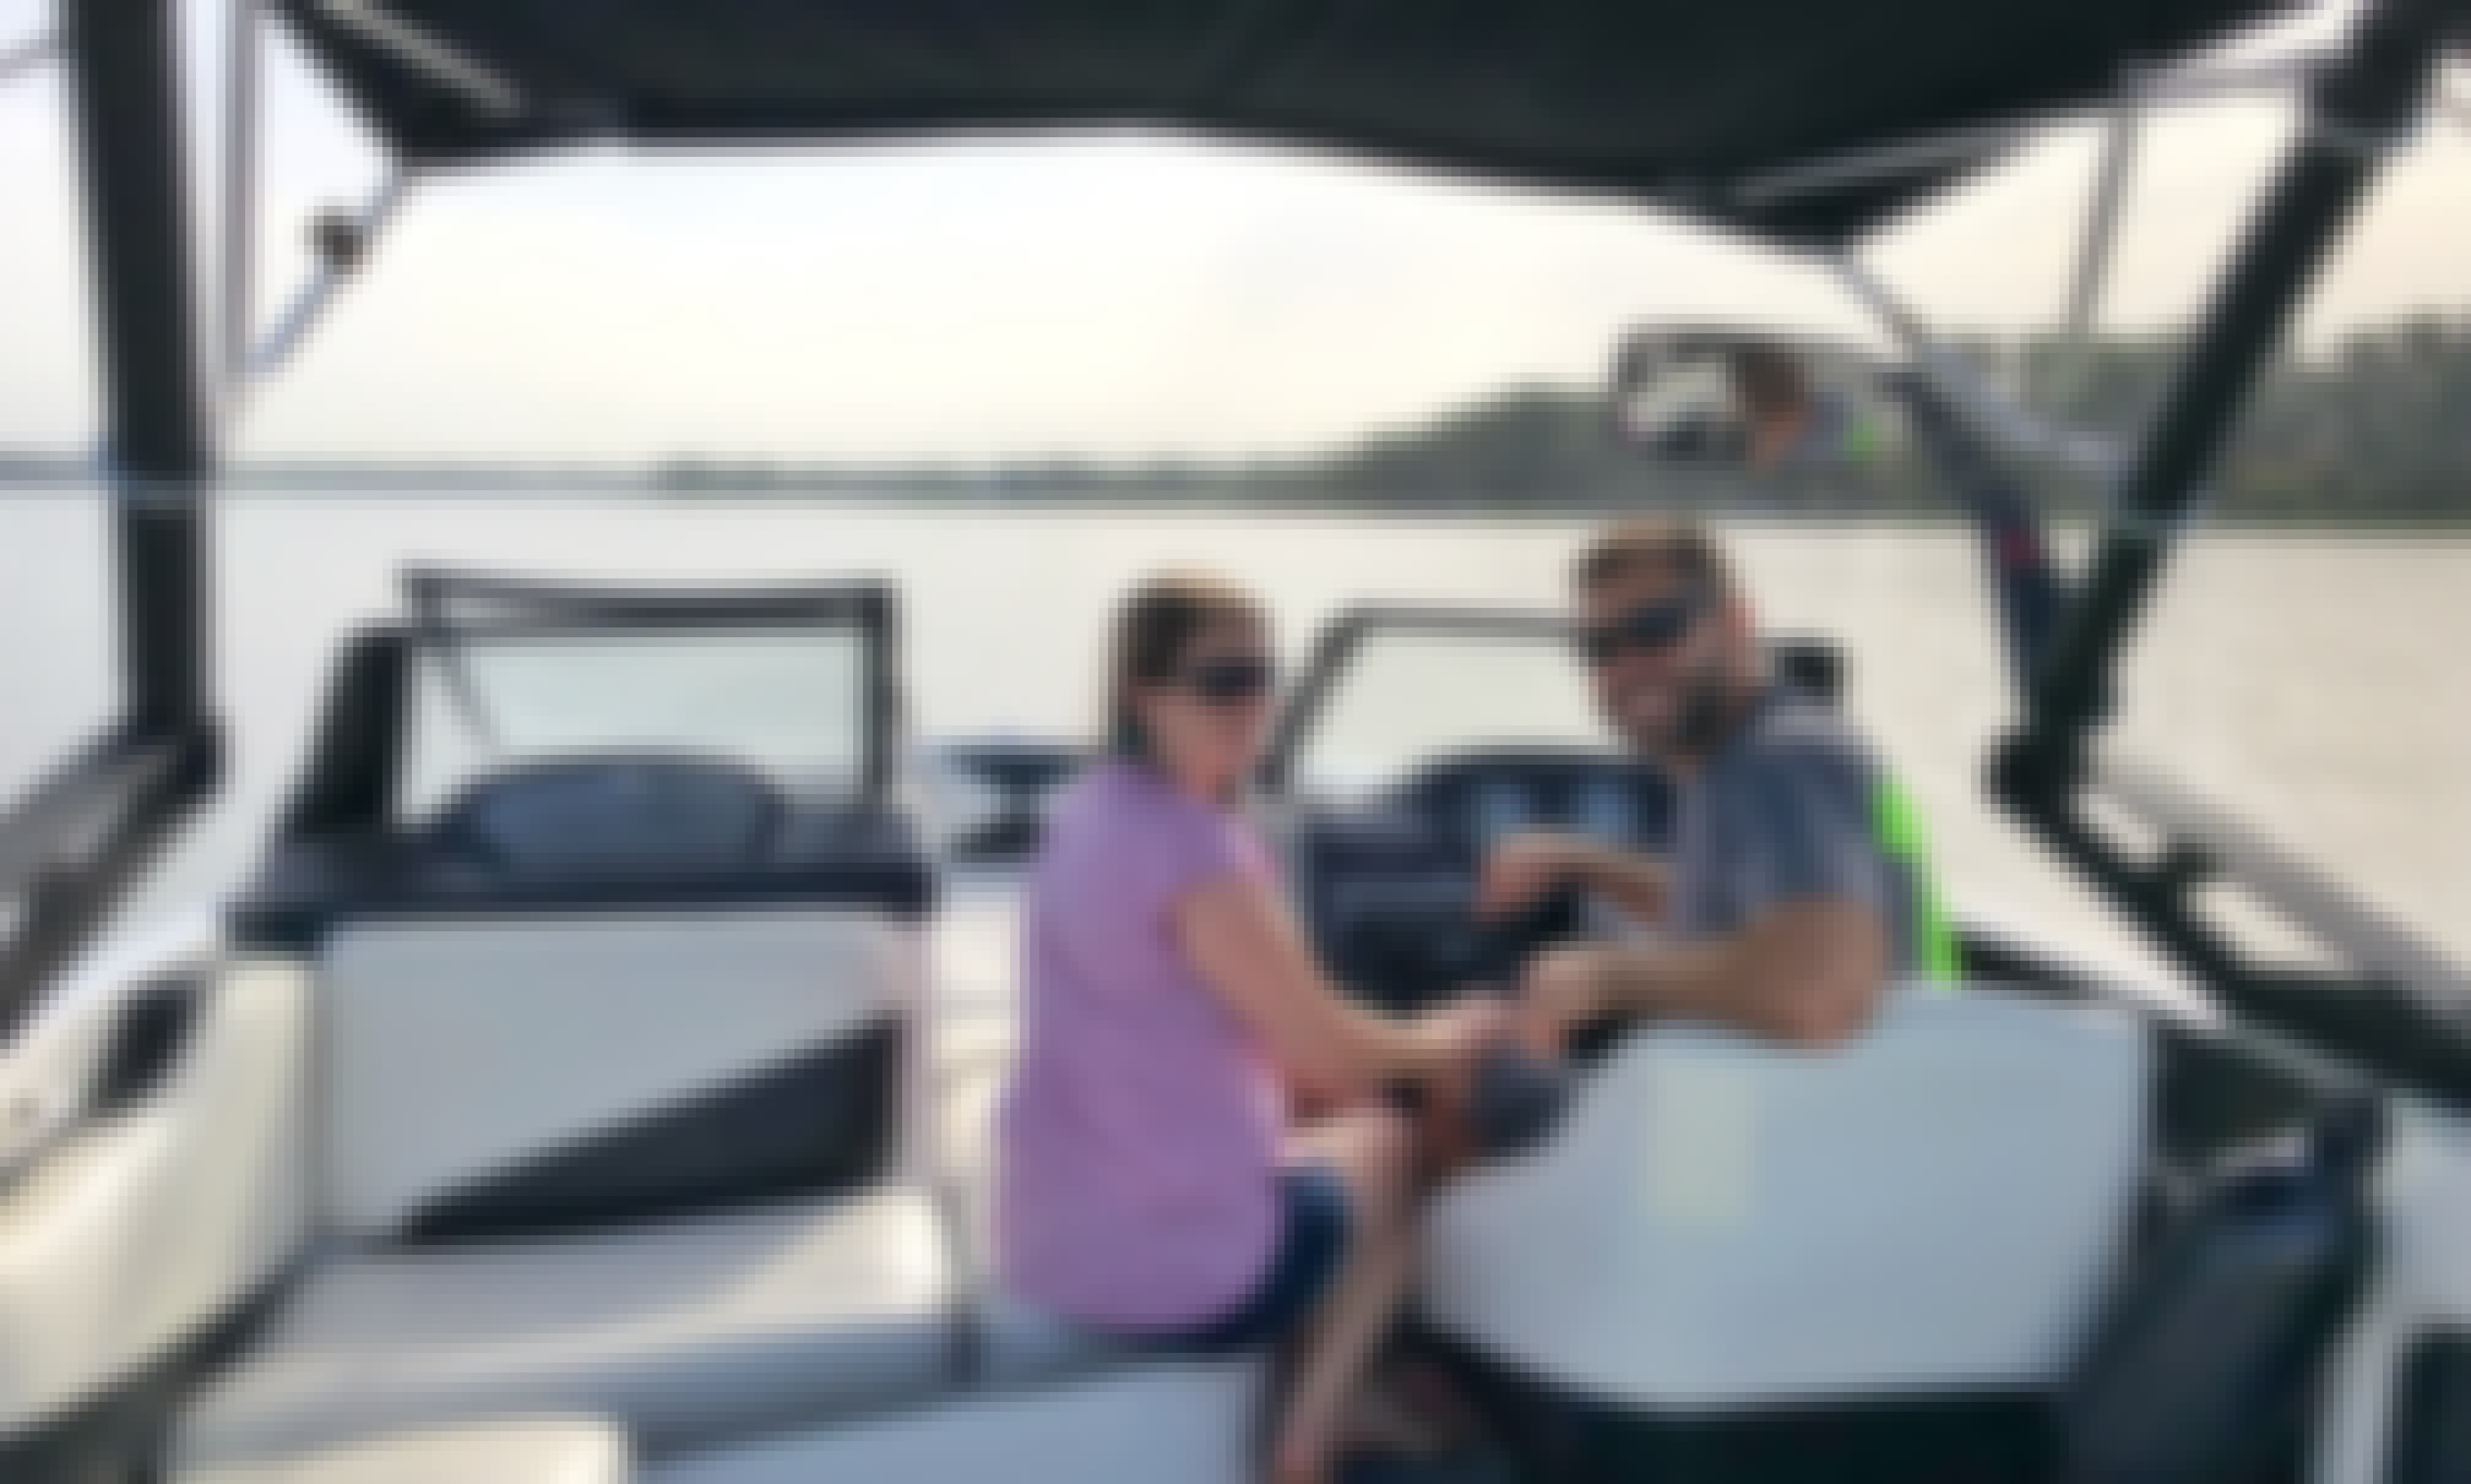 11 People Wakeboat for Rental in Windermere